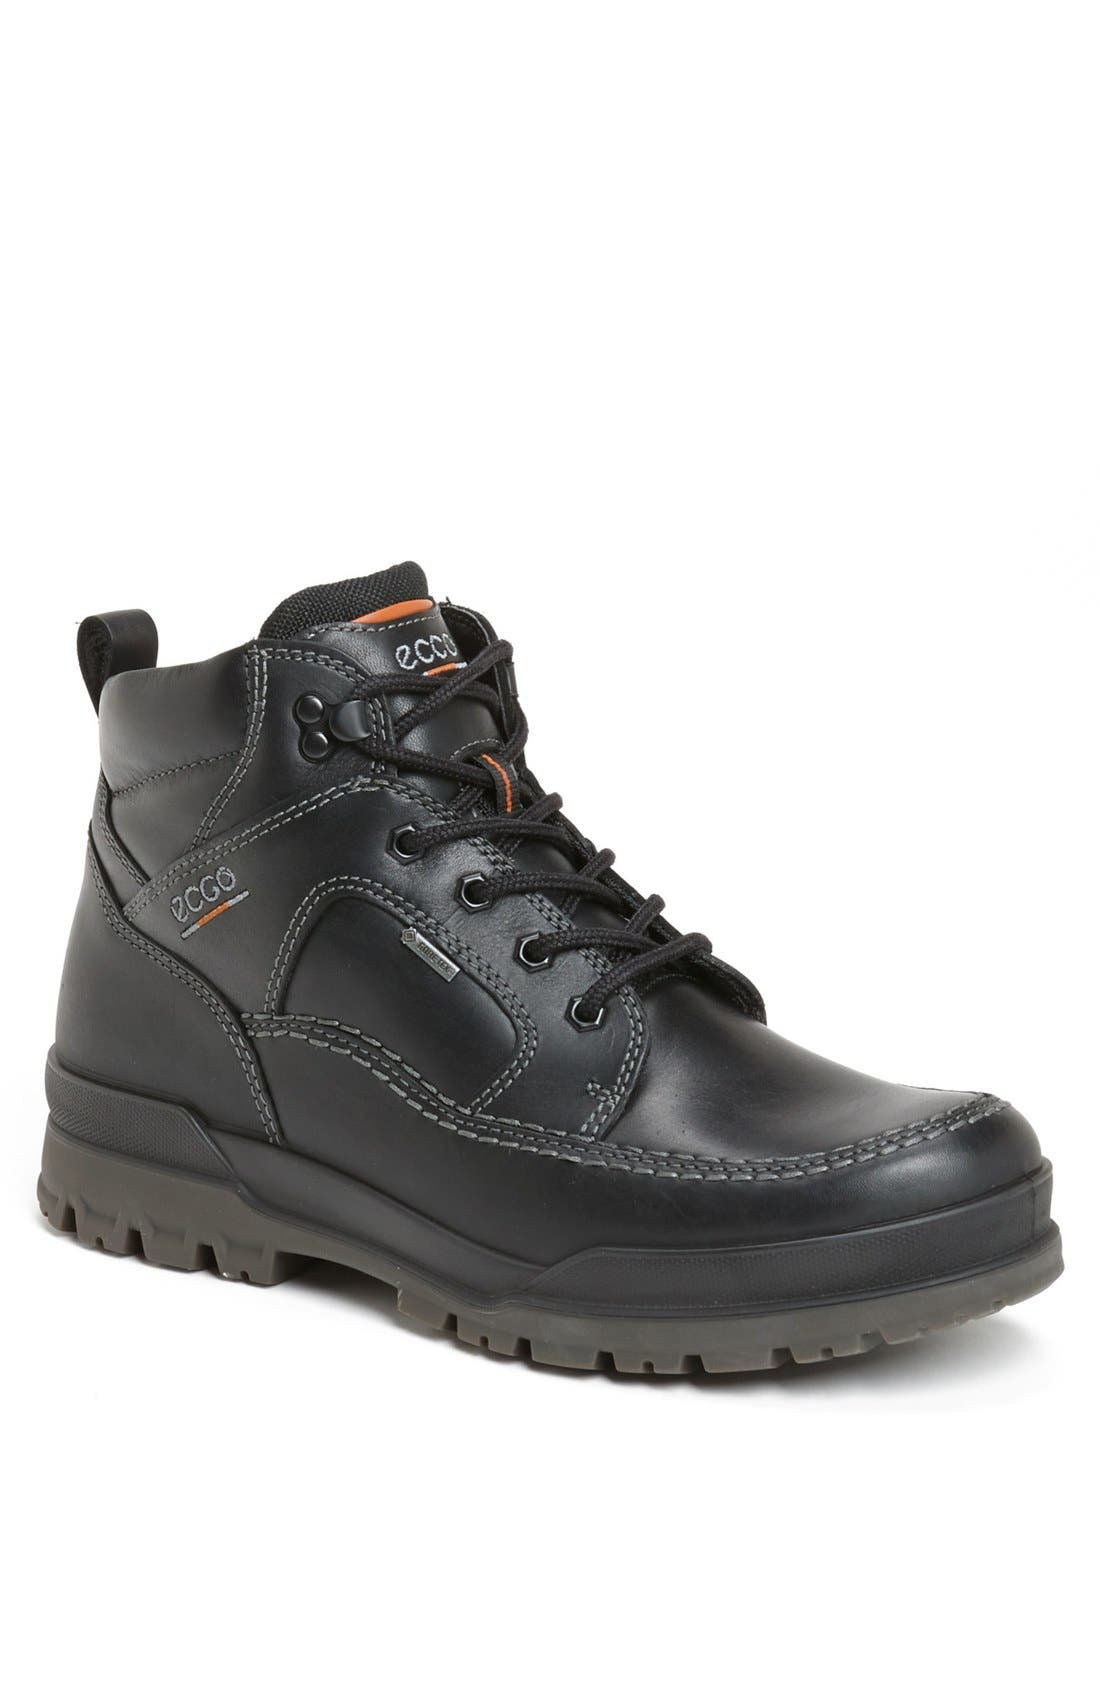 Main Image - ECCO 'Track VI' Waterproof Moc Toe Boot